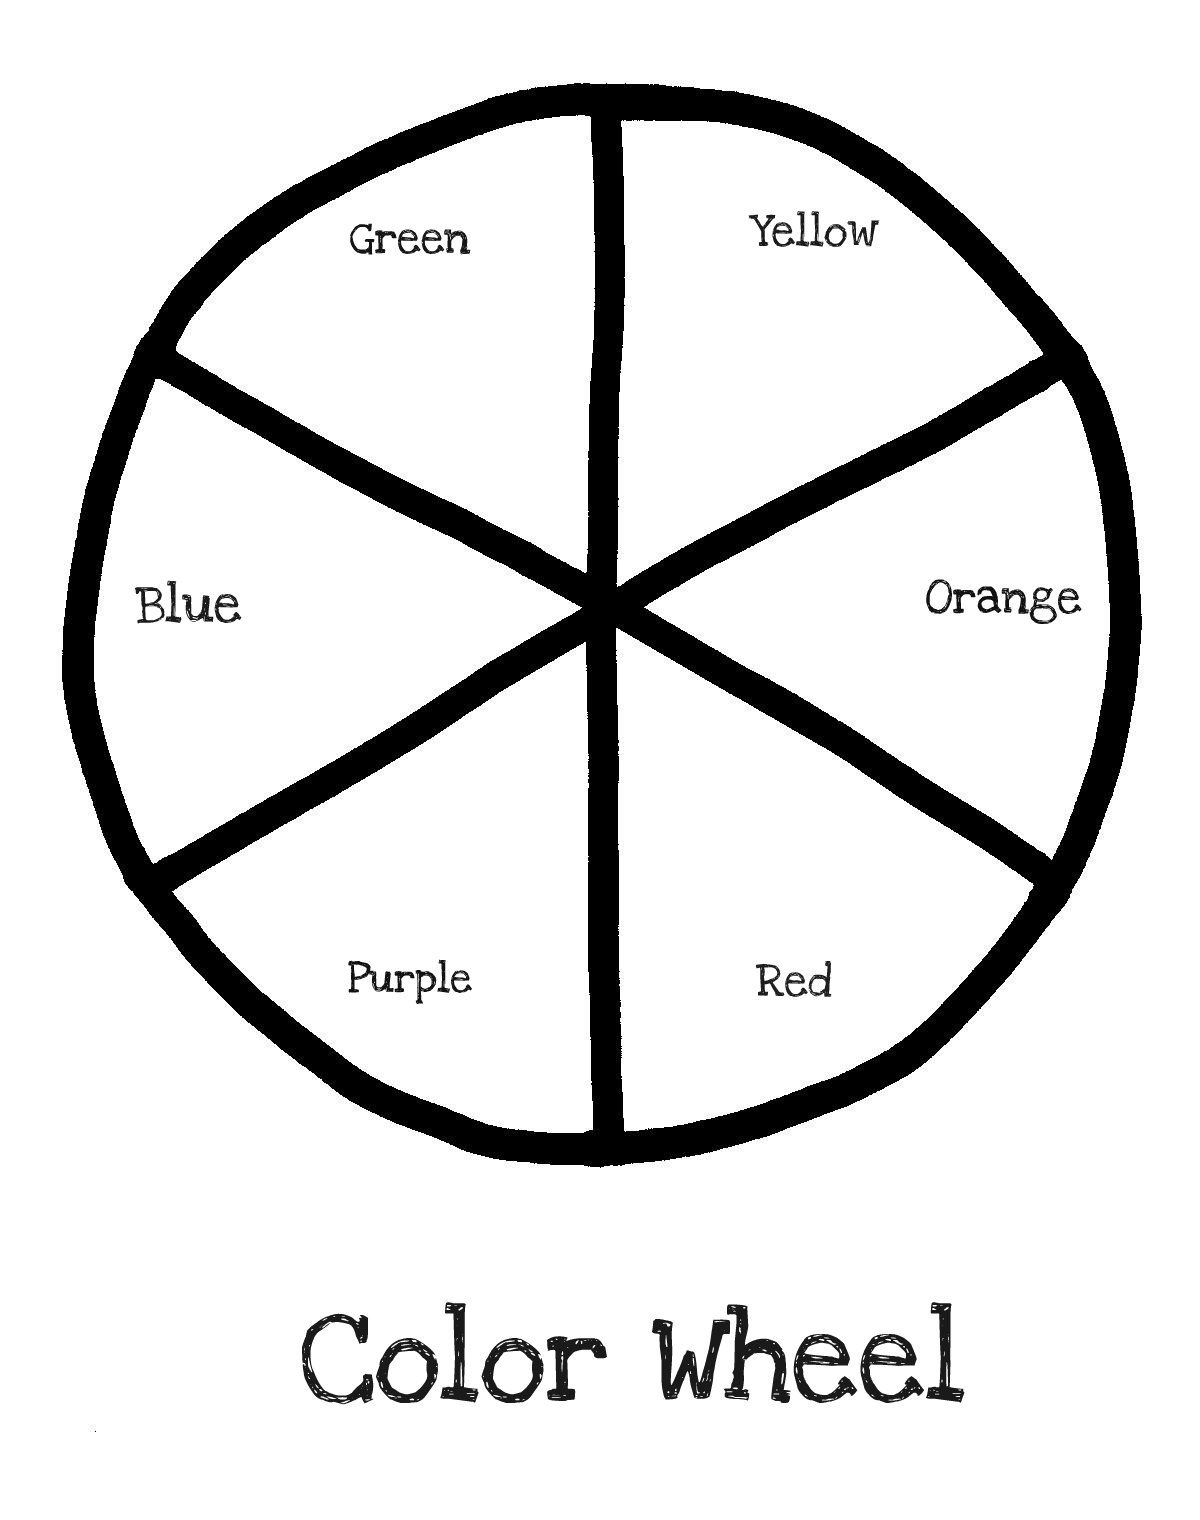 Color Wheel Blank Labeled Preschool Colors Color Wheel Summer School Art